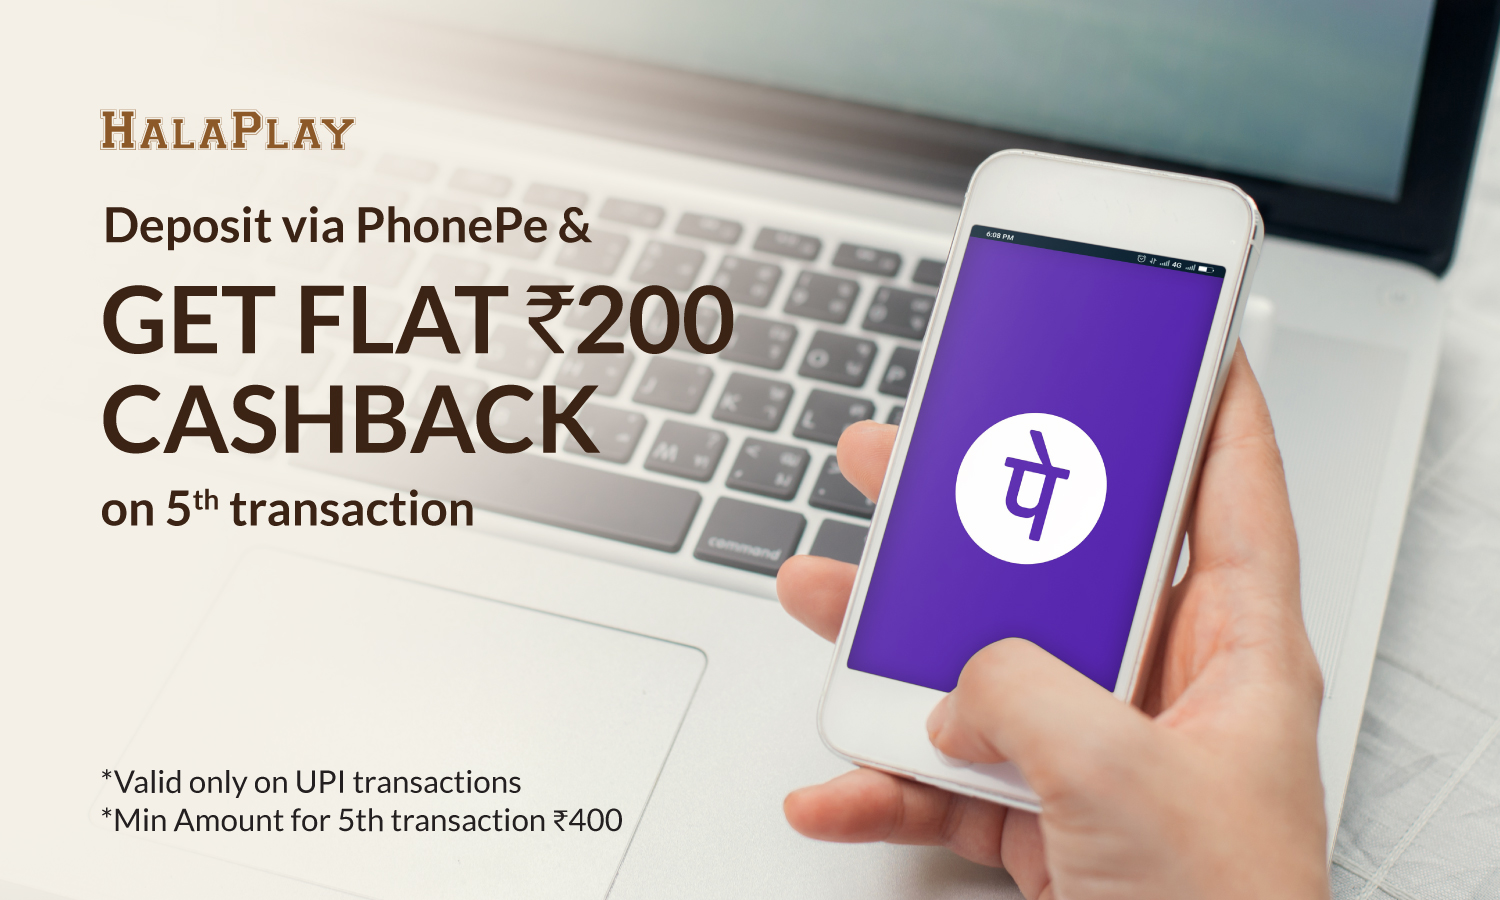 Deposit Money via PhonePe & Get Flat ₹200 Cashback